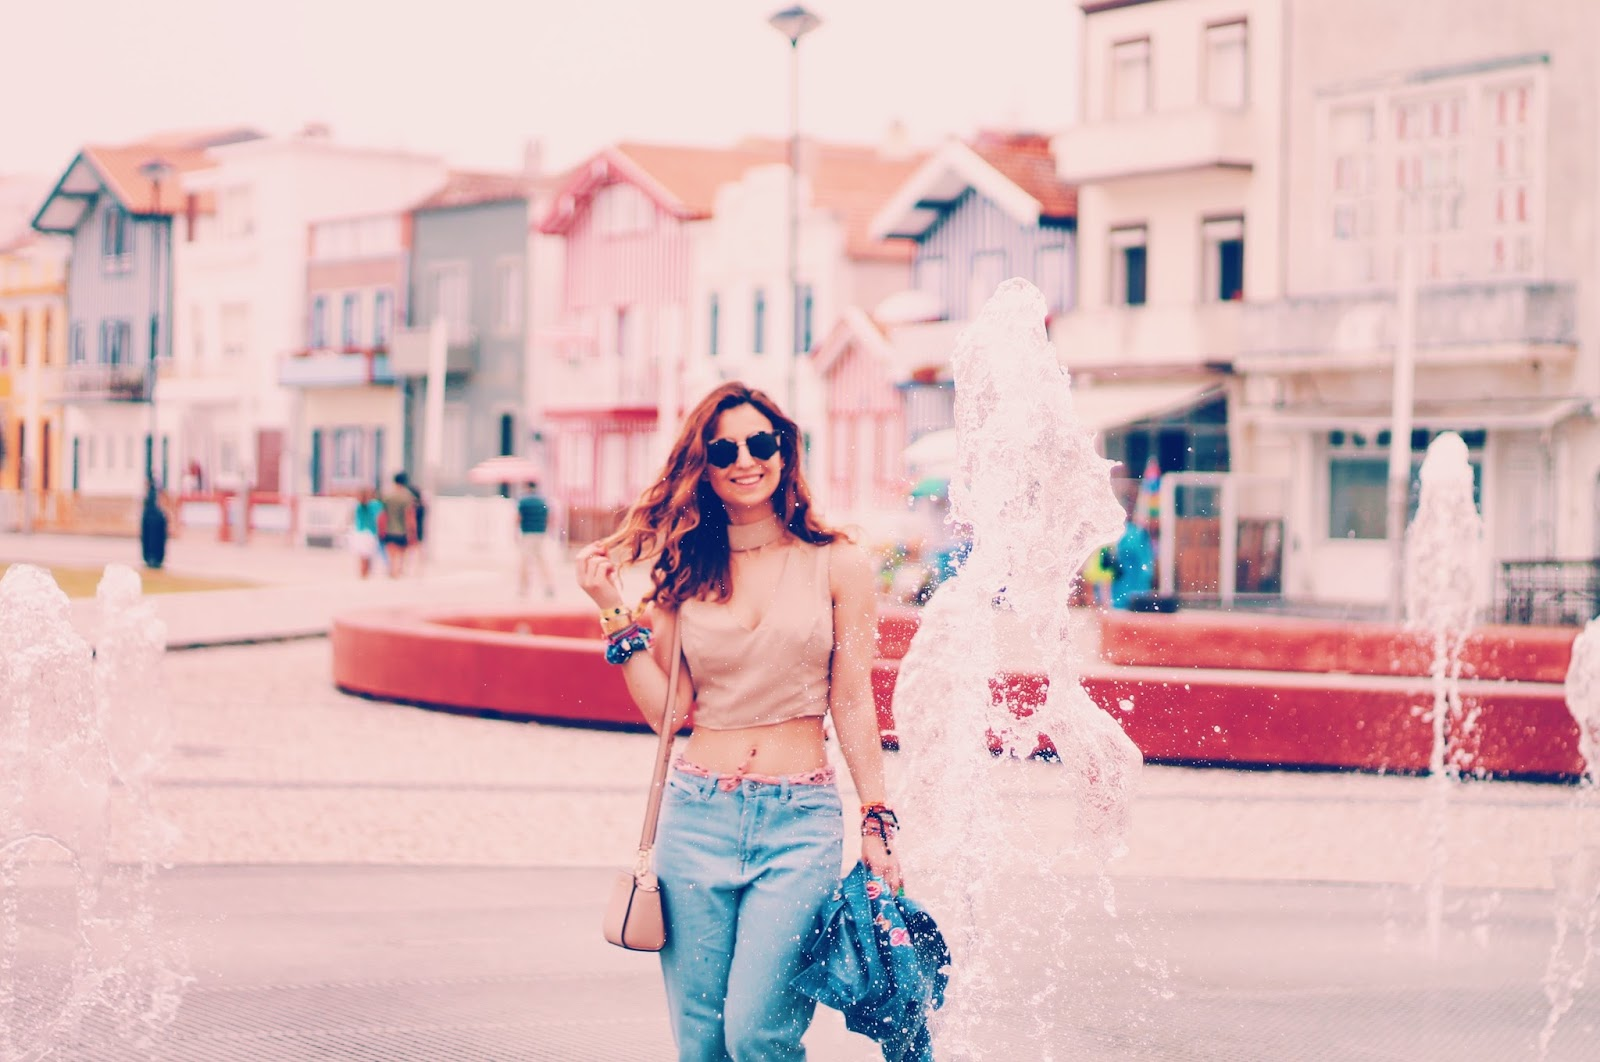 fc32278706 Outfits & Photos & Words | Boyfriend jeans and girlfriend dreams ...